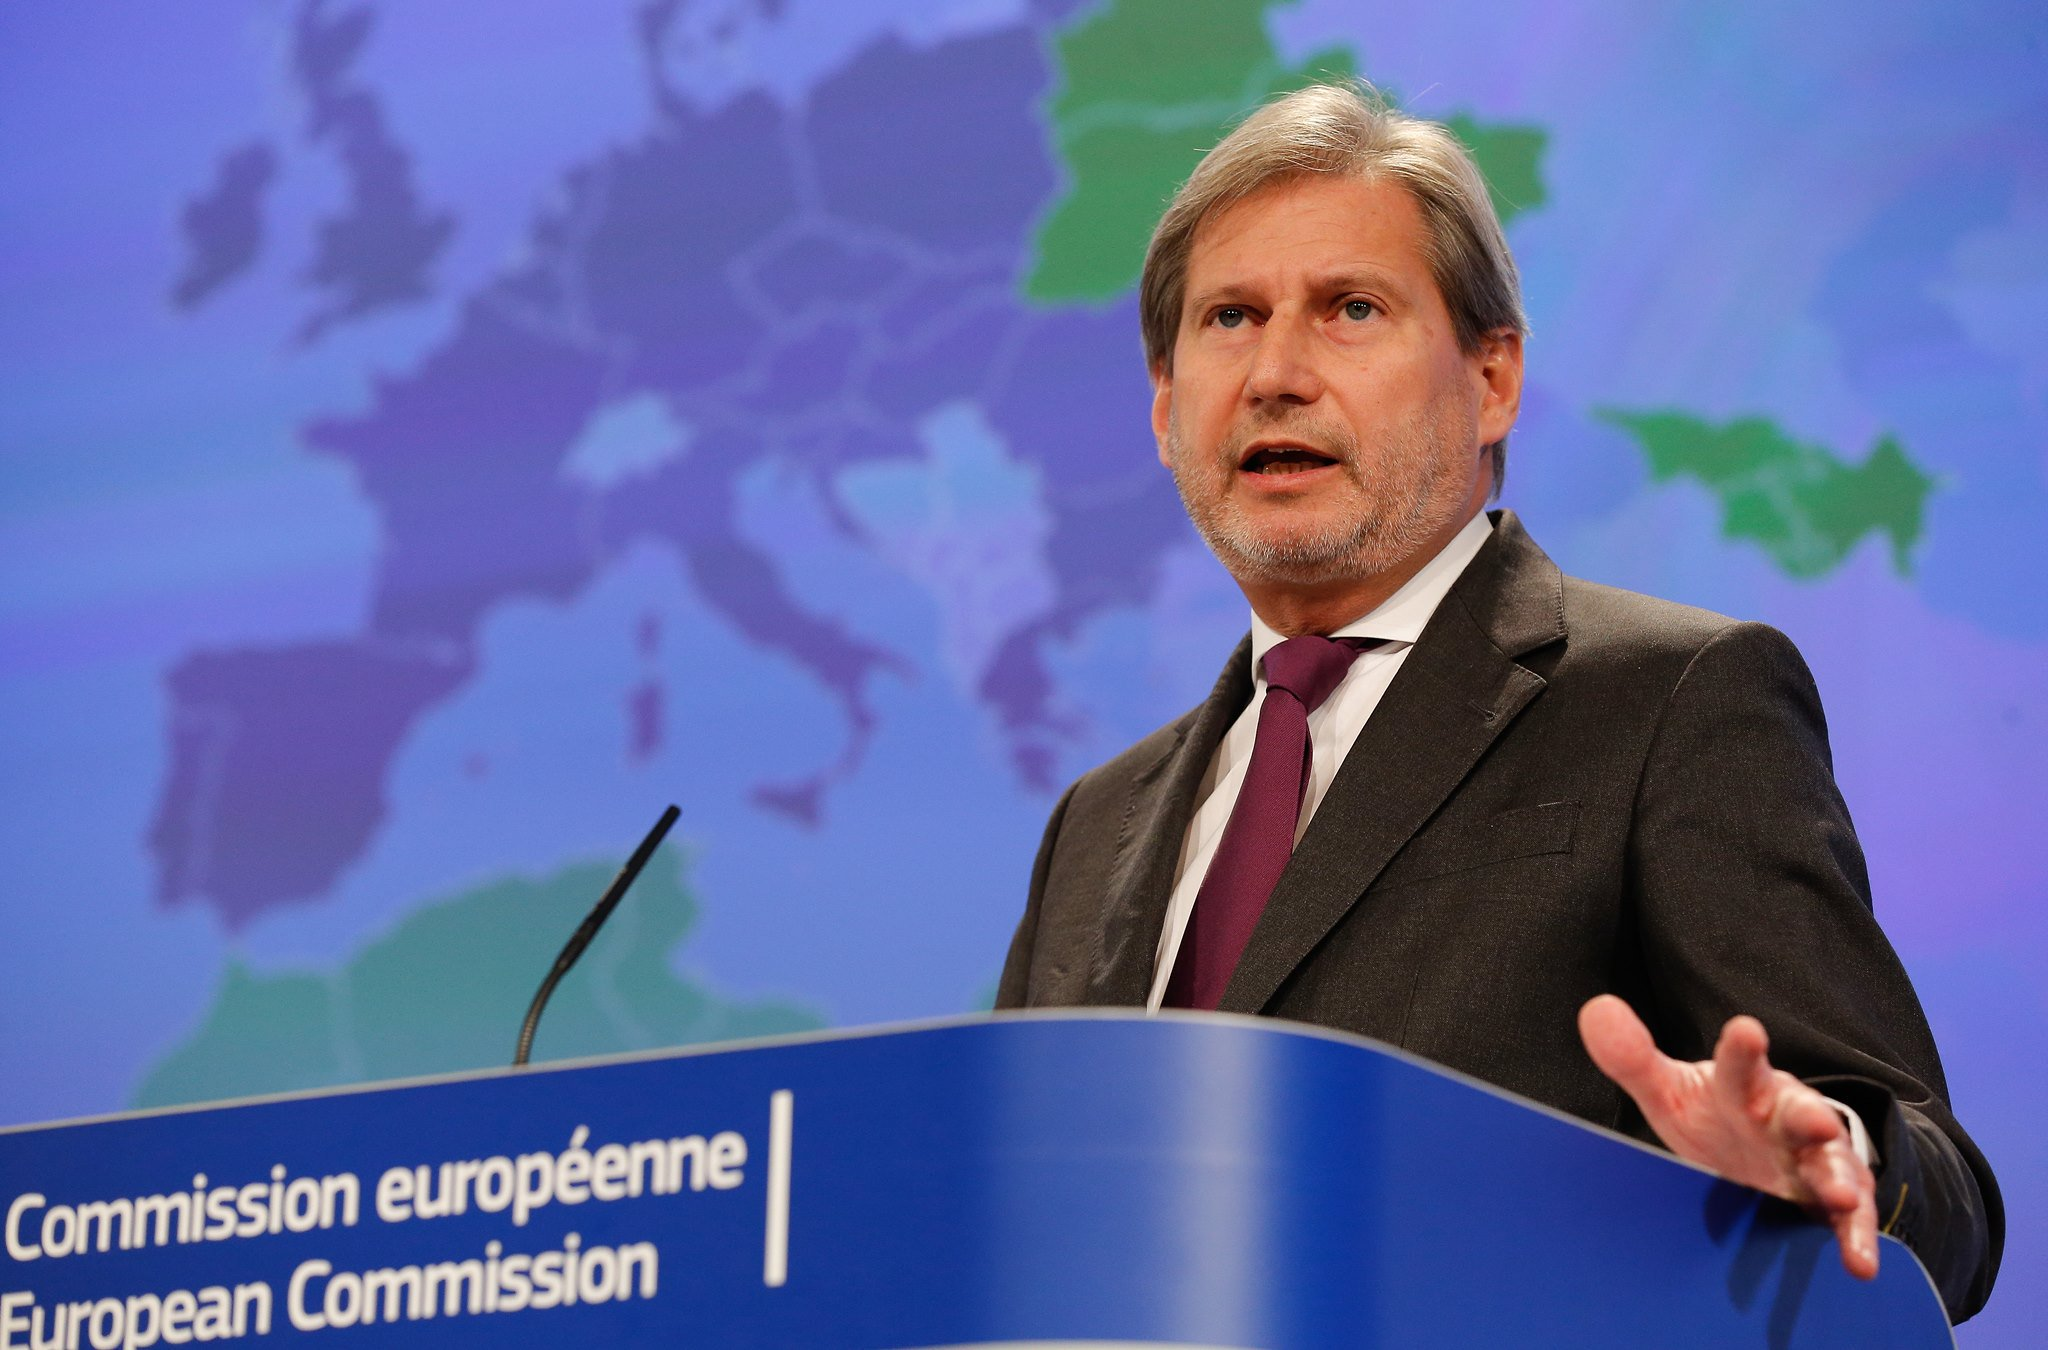 EU Commissioner Hahn calls on voters to participate in the referendum